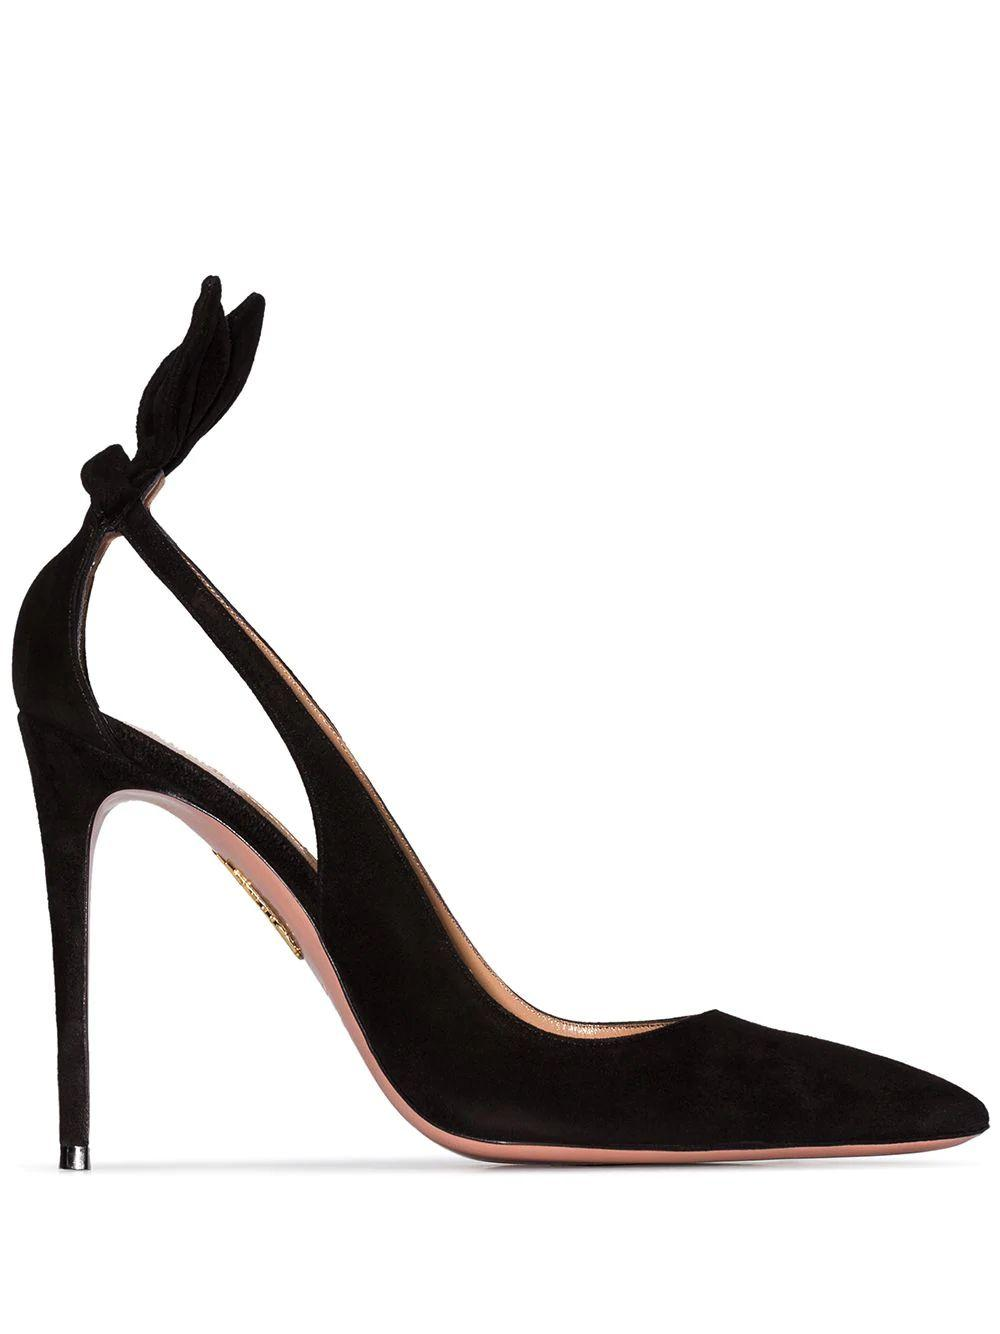 Deneuve 105mm Suede Pump With Cutouts Item # DENHIGP0-SUE